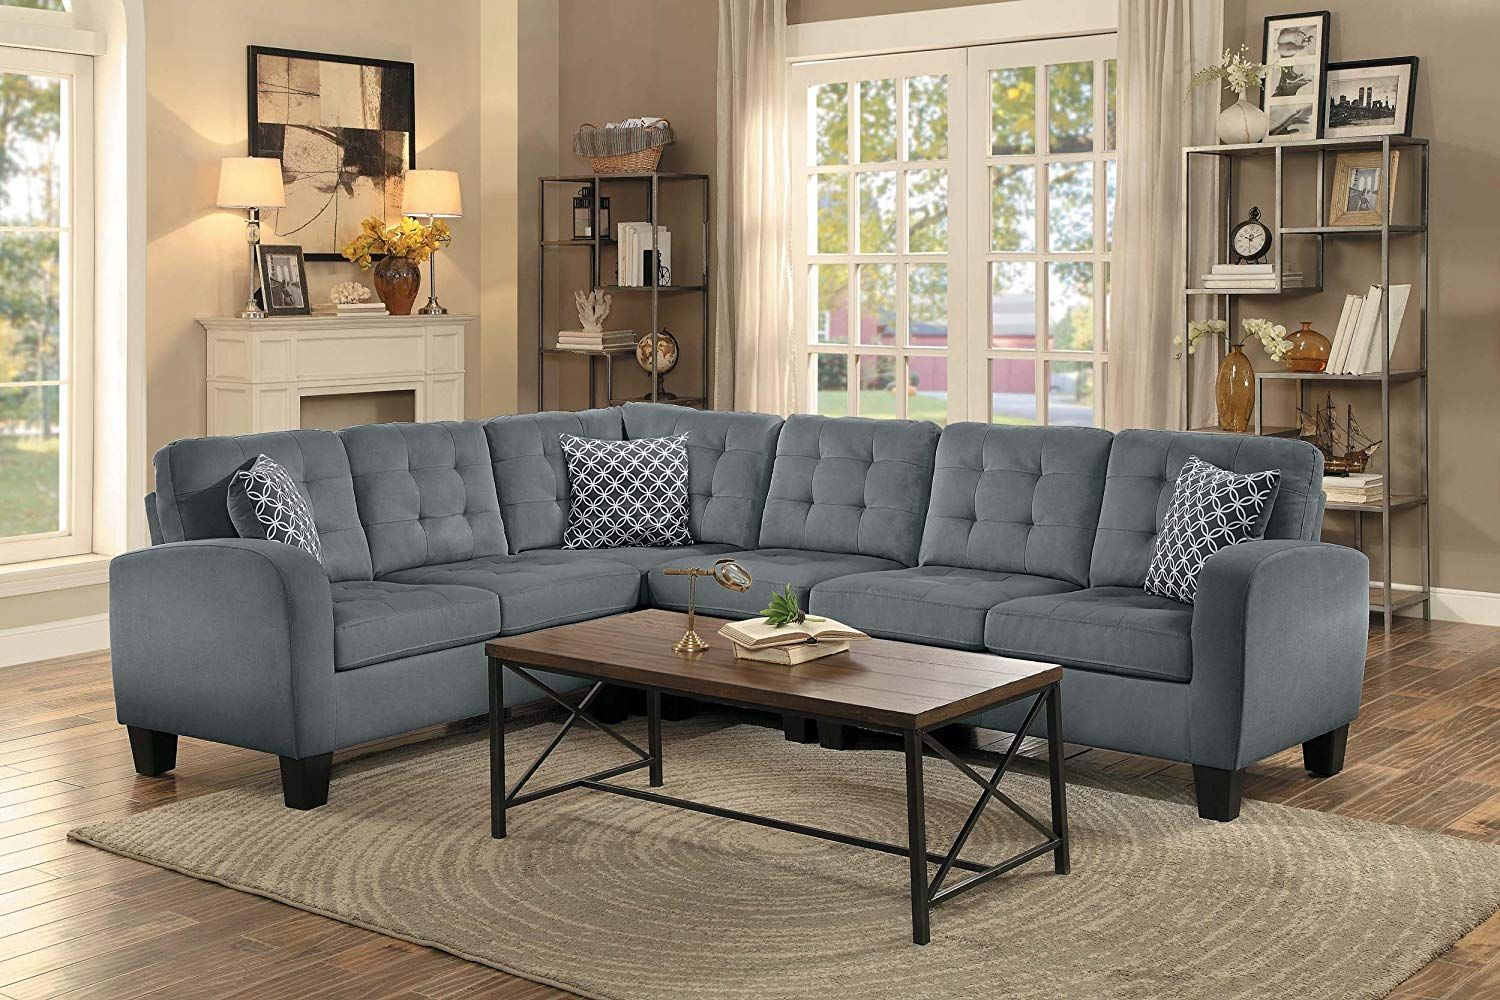 Homelegance Sinclair L Shaped 2 Piece Sectional Sofa With Tufted Accents And Three Geometric Pattern Toss P Grey Sectional Sofa Grey Sectional Fabric Sectional [ 1000 x 1500 Pixel ]